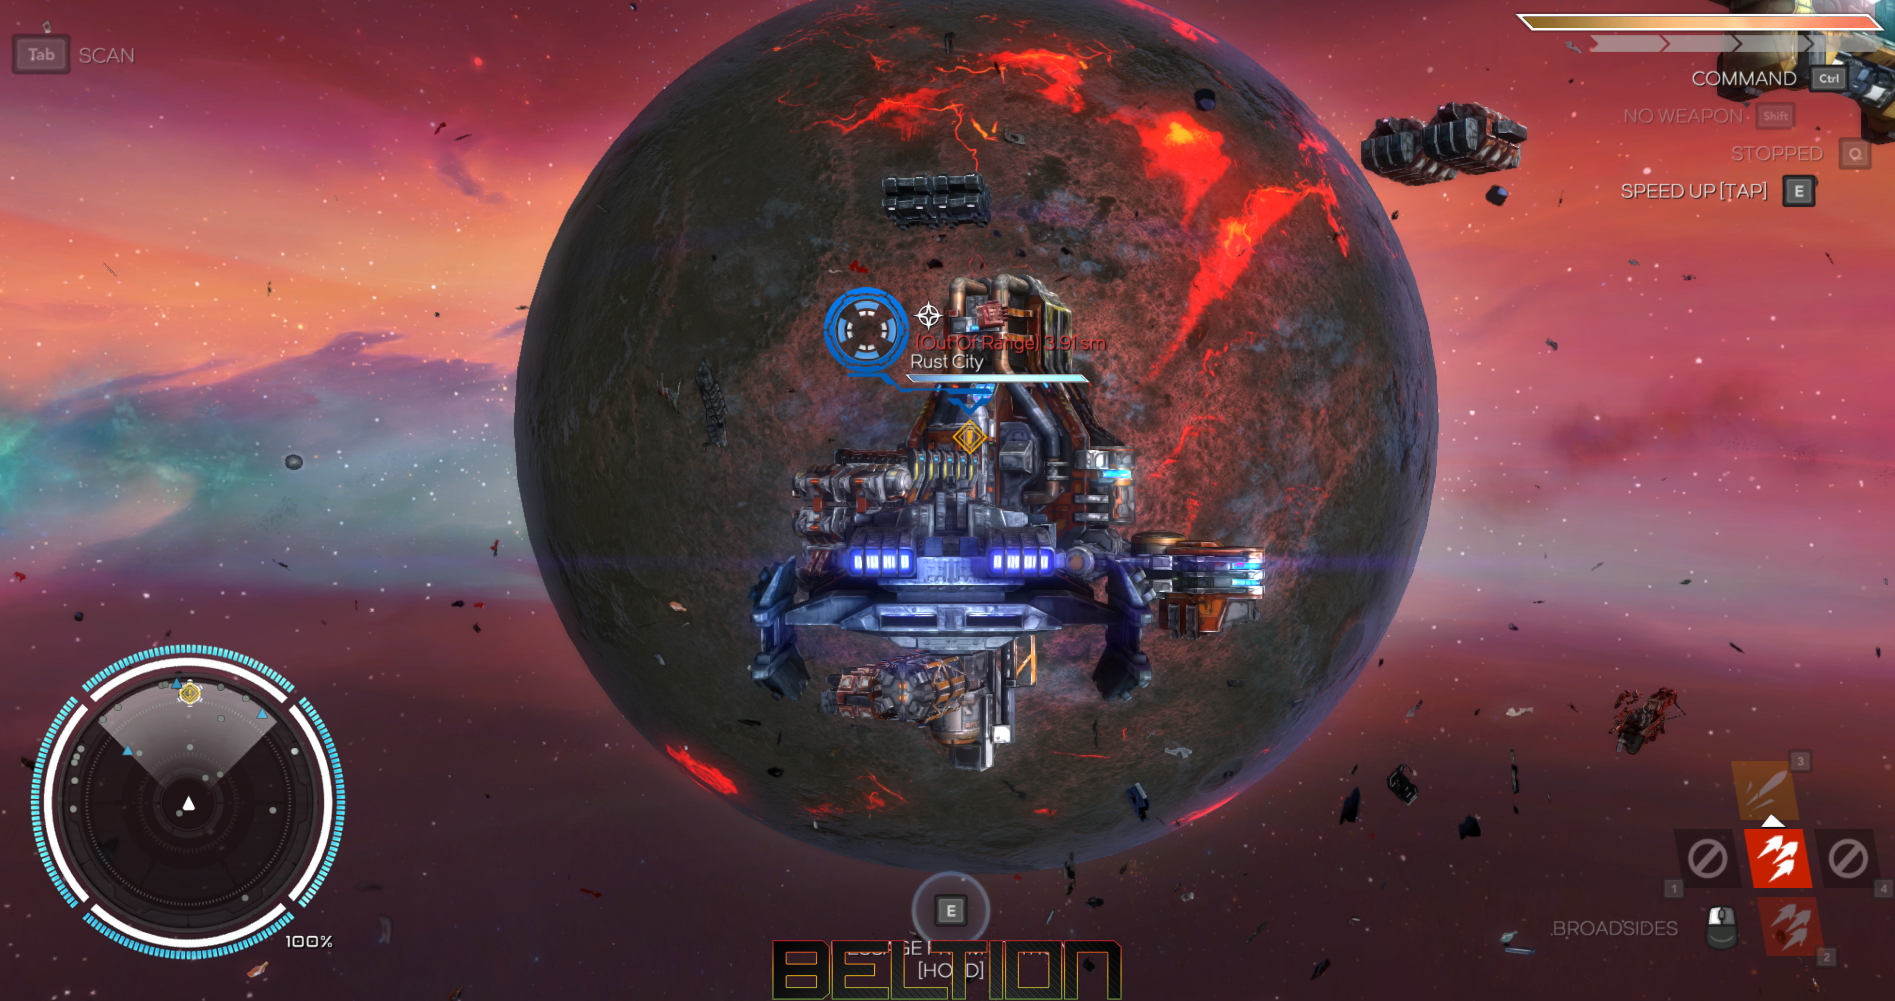 ПОИГРАЛИ REBEL GALAXY-1